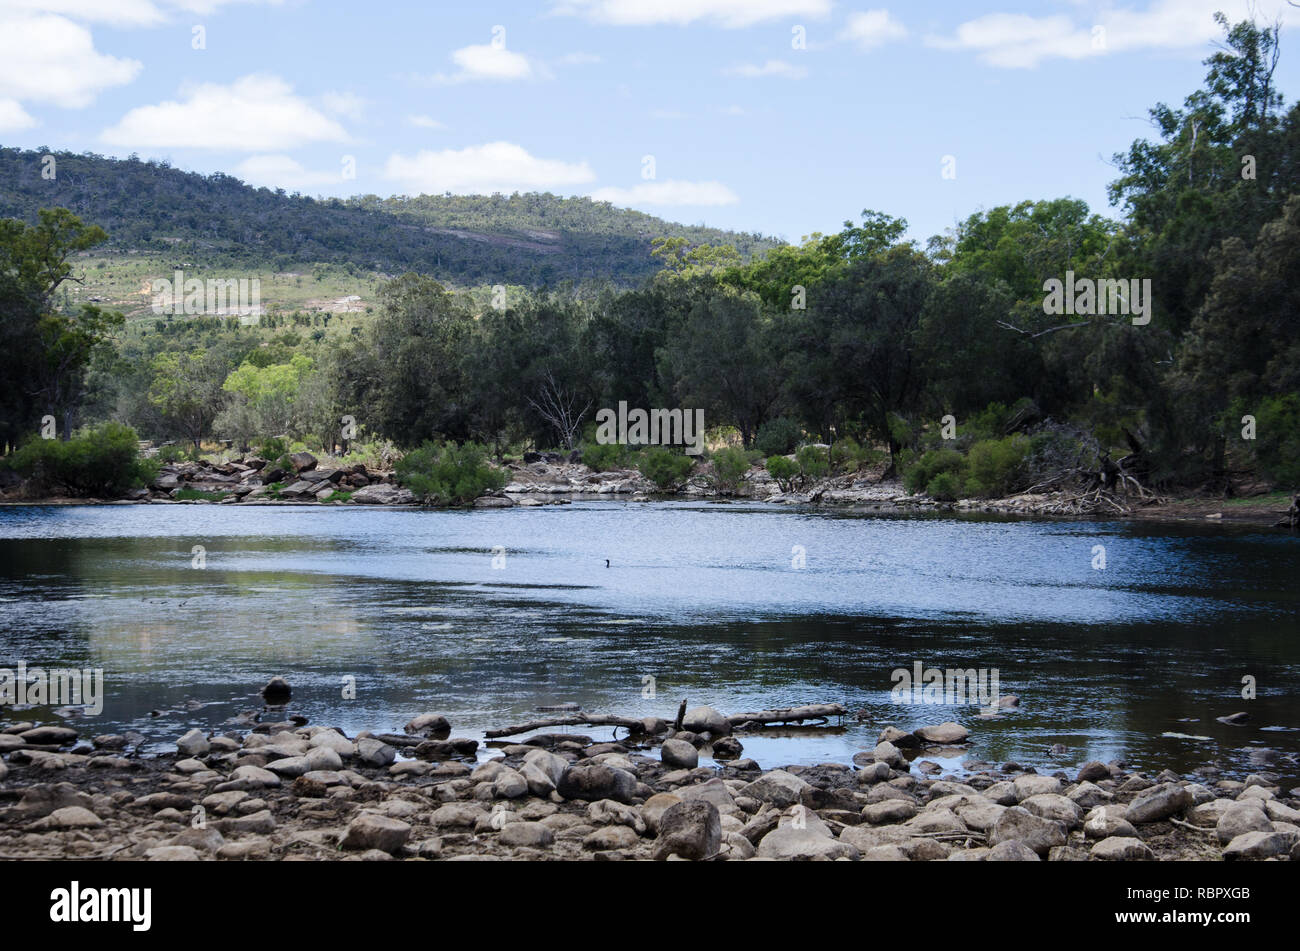 The Walyunga National Park, roughly translated as 'happy place', is a series of streams in the Darling range northeast of Perth in Western Australia - Stock Image